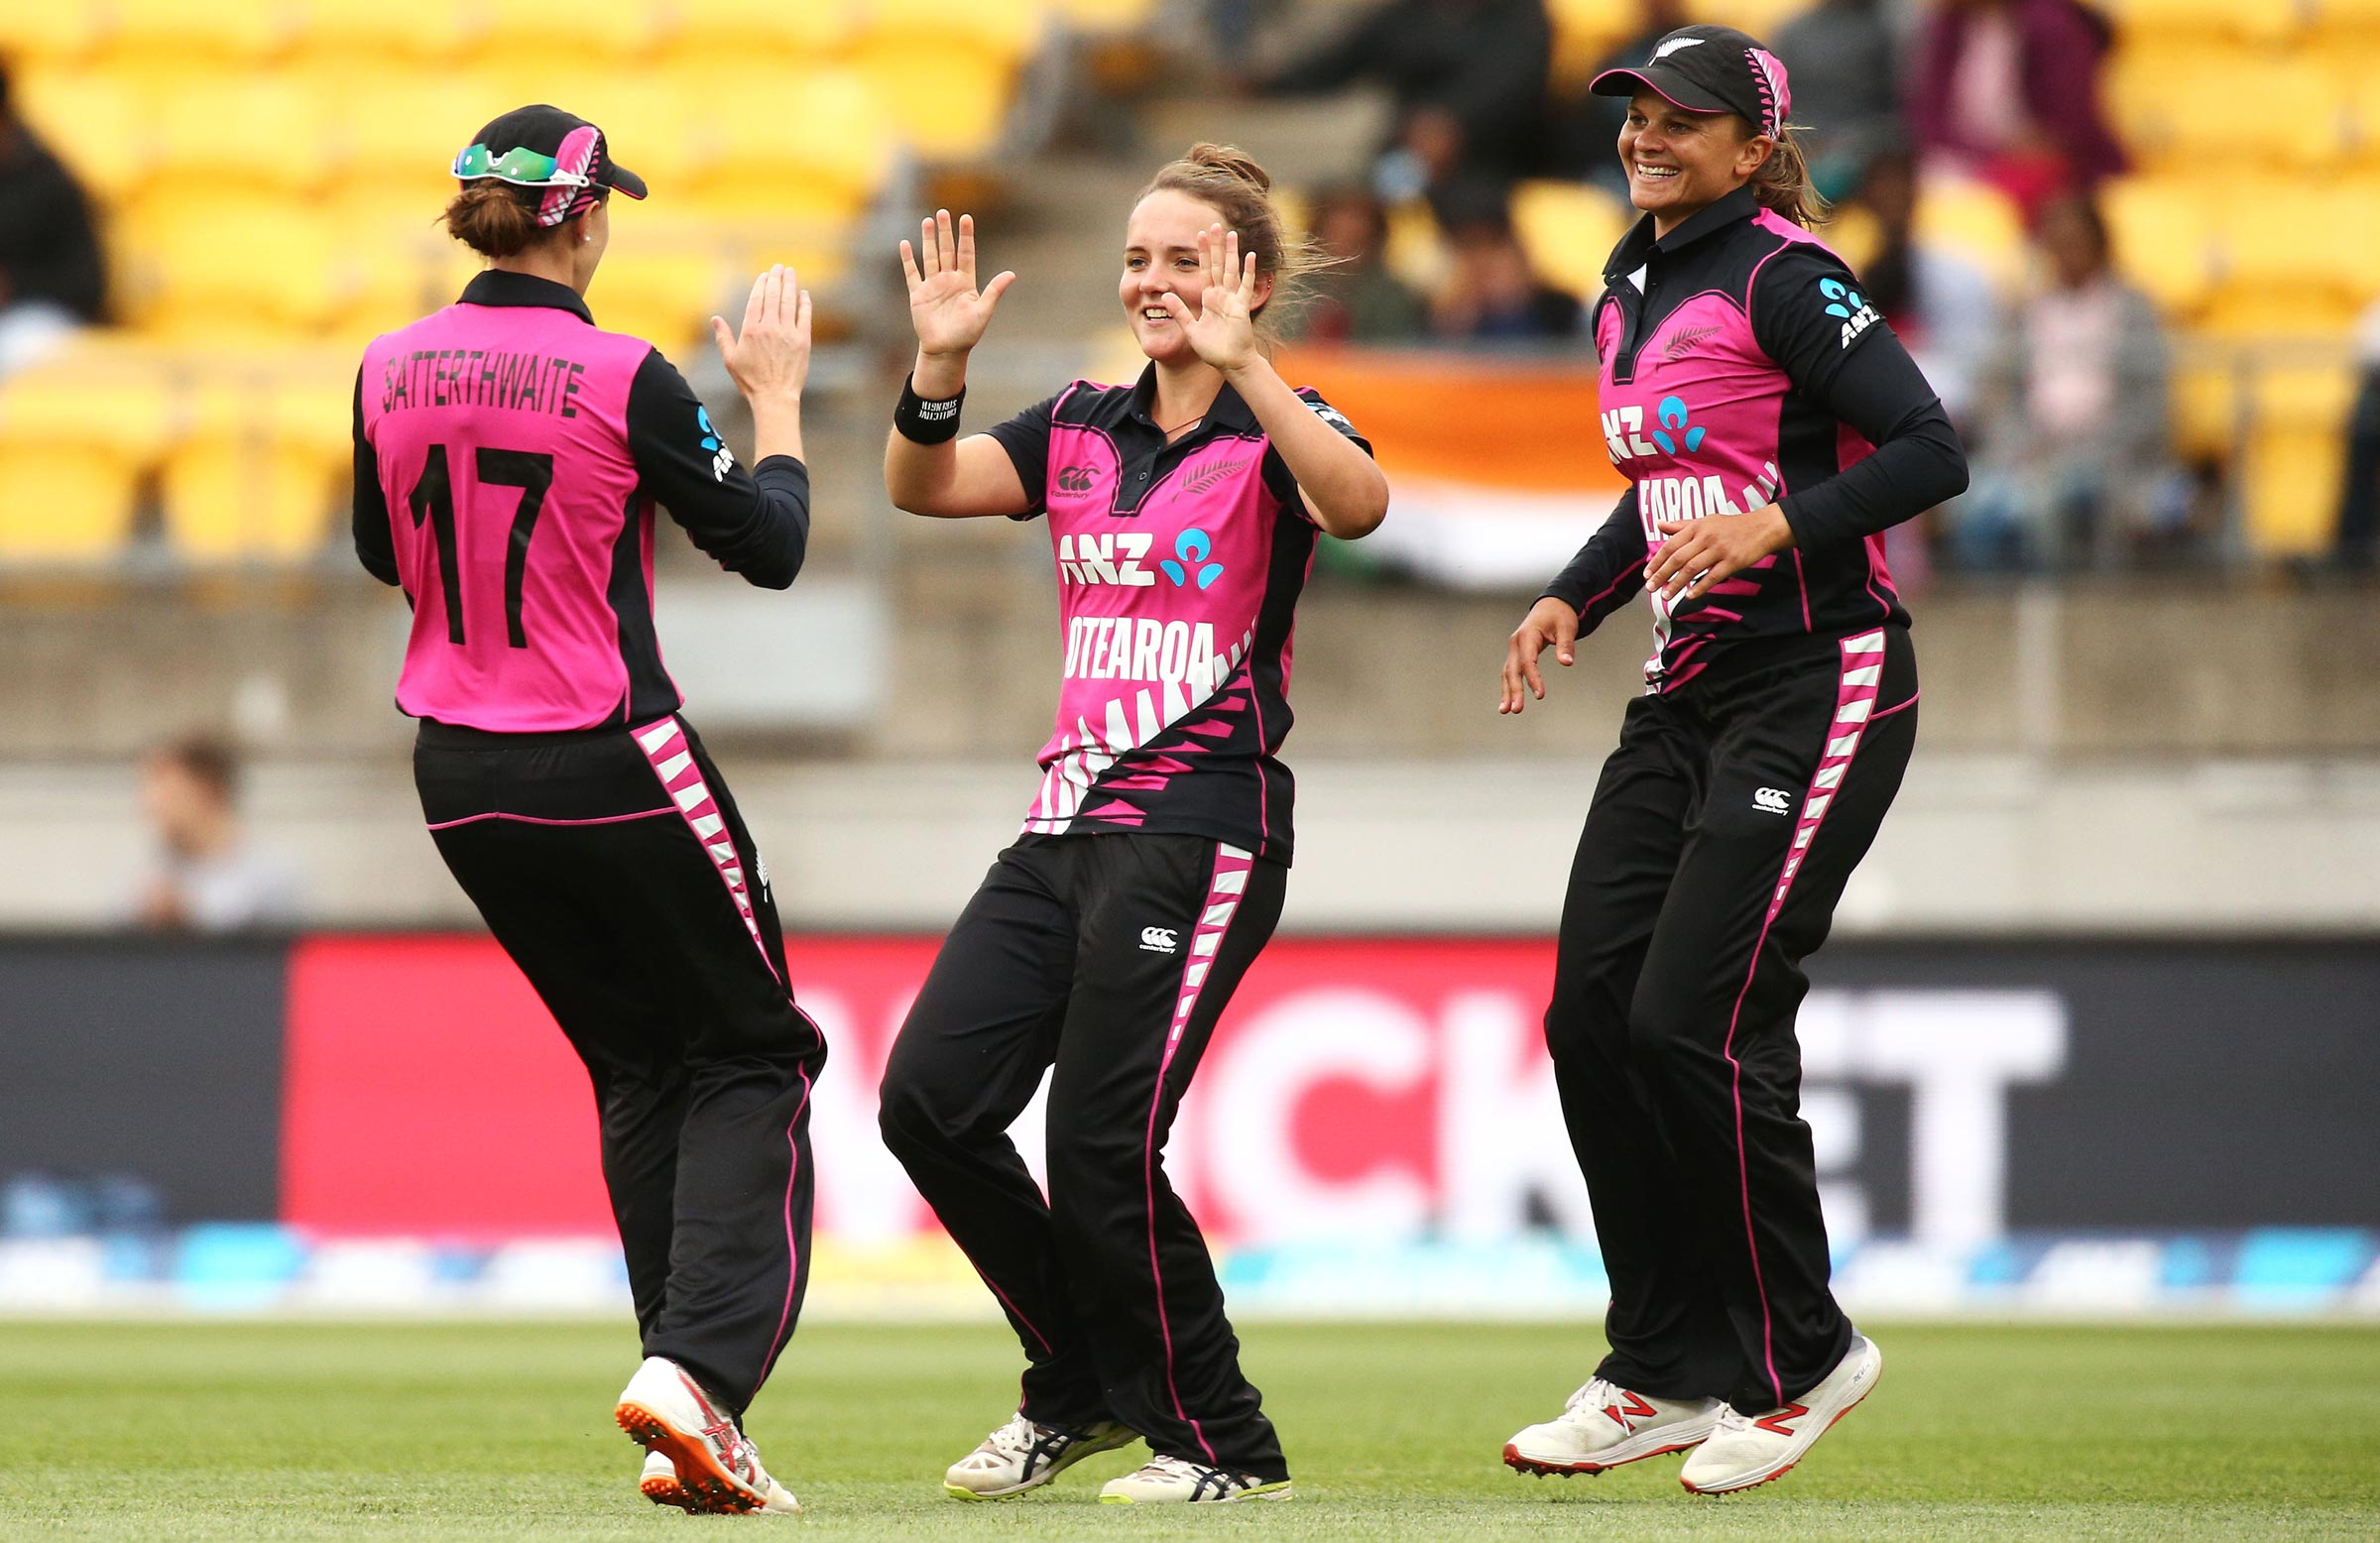 Kerr with fellow New Zealand and Big Bash stars Amy Satterthwaite and Suzie Bates // Getty